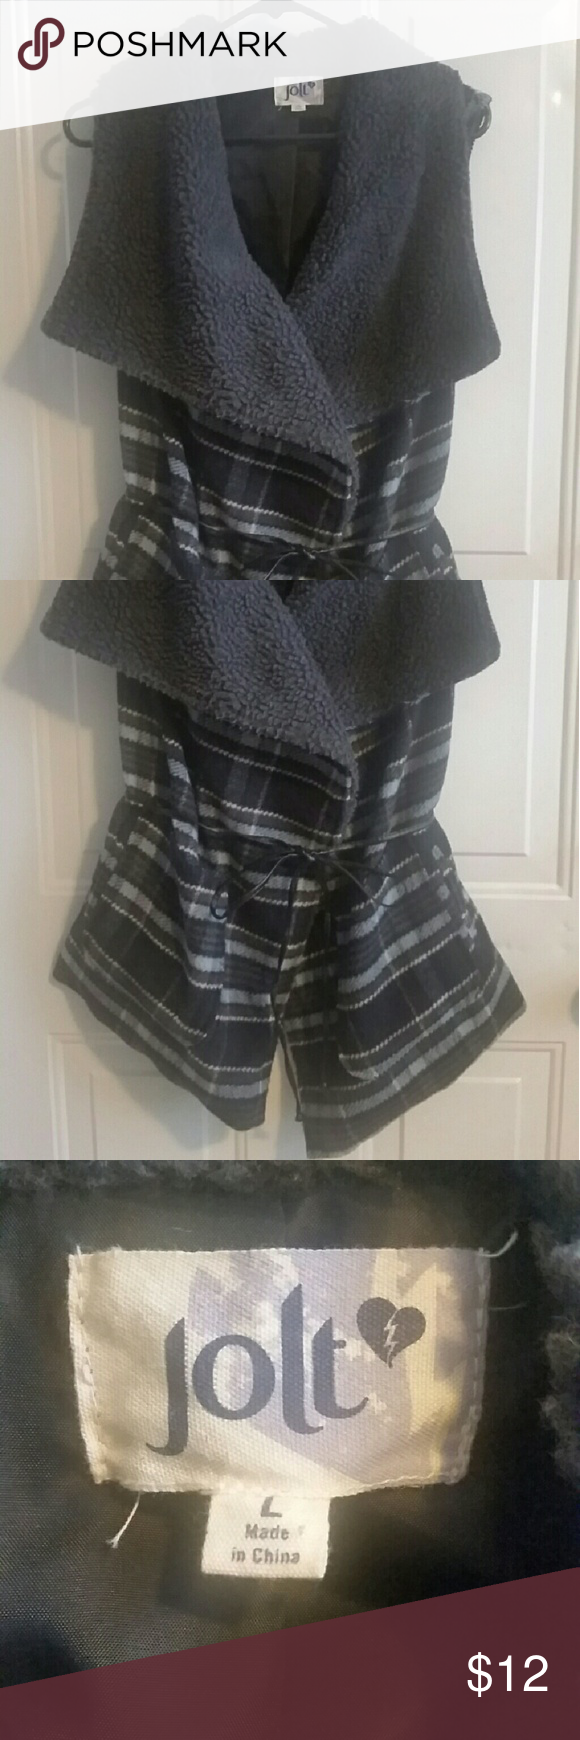 Plaid Vest for Autumn I love this and would possibly wear it everyday in the Fall, but I'm really, really trying to minimize to bare essentials!  I plan on moving to a tiny house once my kids are gone. :-)  You can wear this tied, or open and leave the little belt tied in the back.  It's very cozy and warm. Excellent condition.  Size is L, but it could easily fit anywhere from a 6-14 more than likely. Colors are gray and blue and brown, with some white/cream. Jolt Jackets & Coats Vests